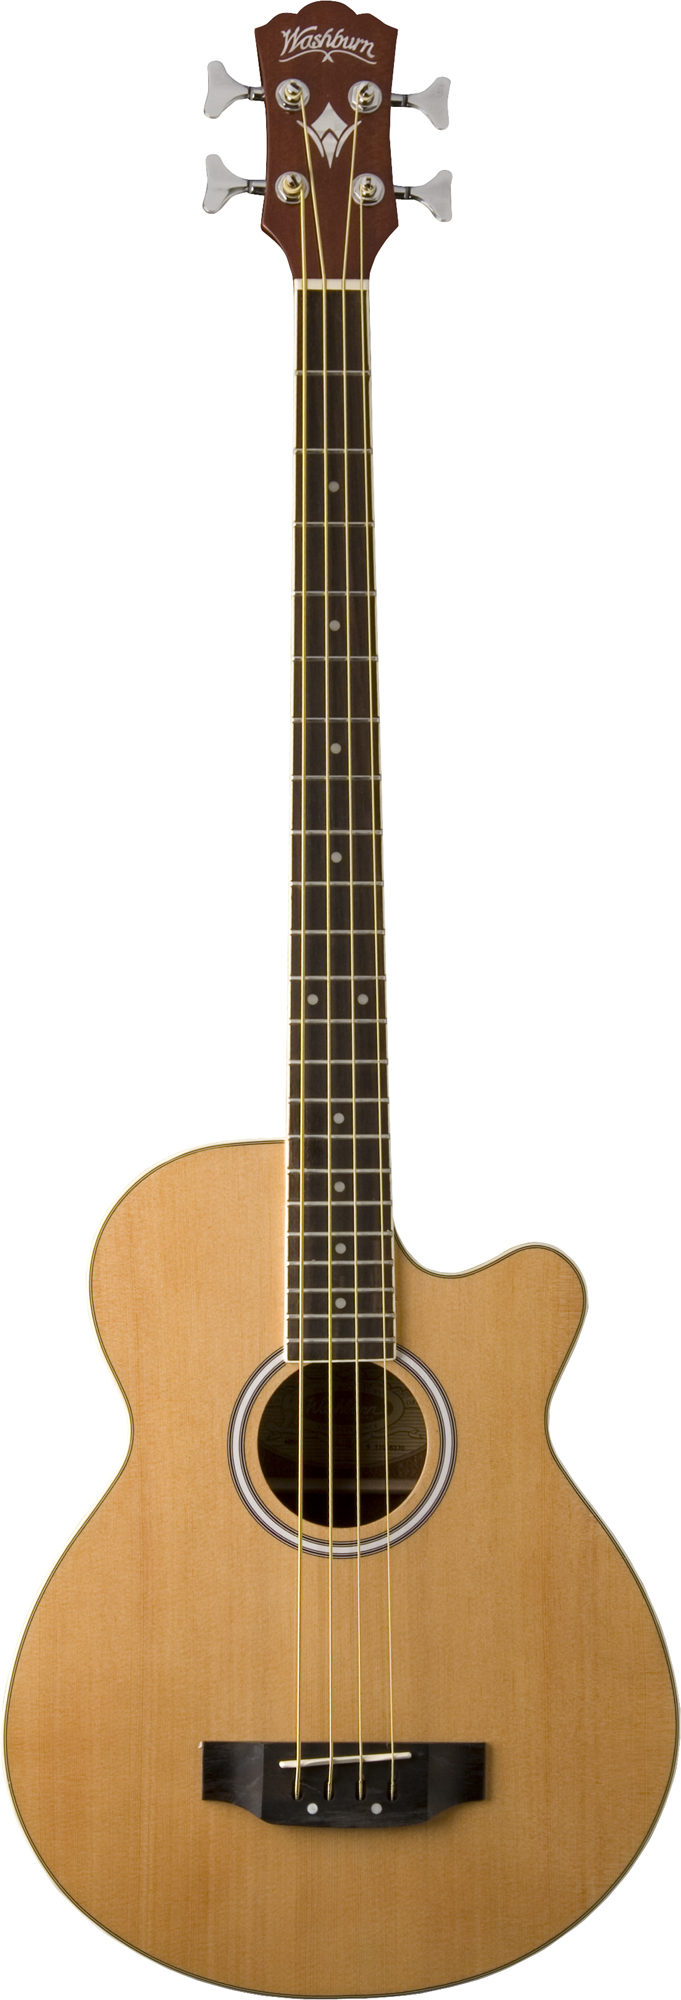 Washburn AB5BK Acoustic/Electric Bass Guitar with Case and Natural Finish